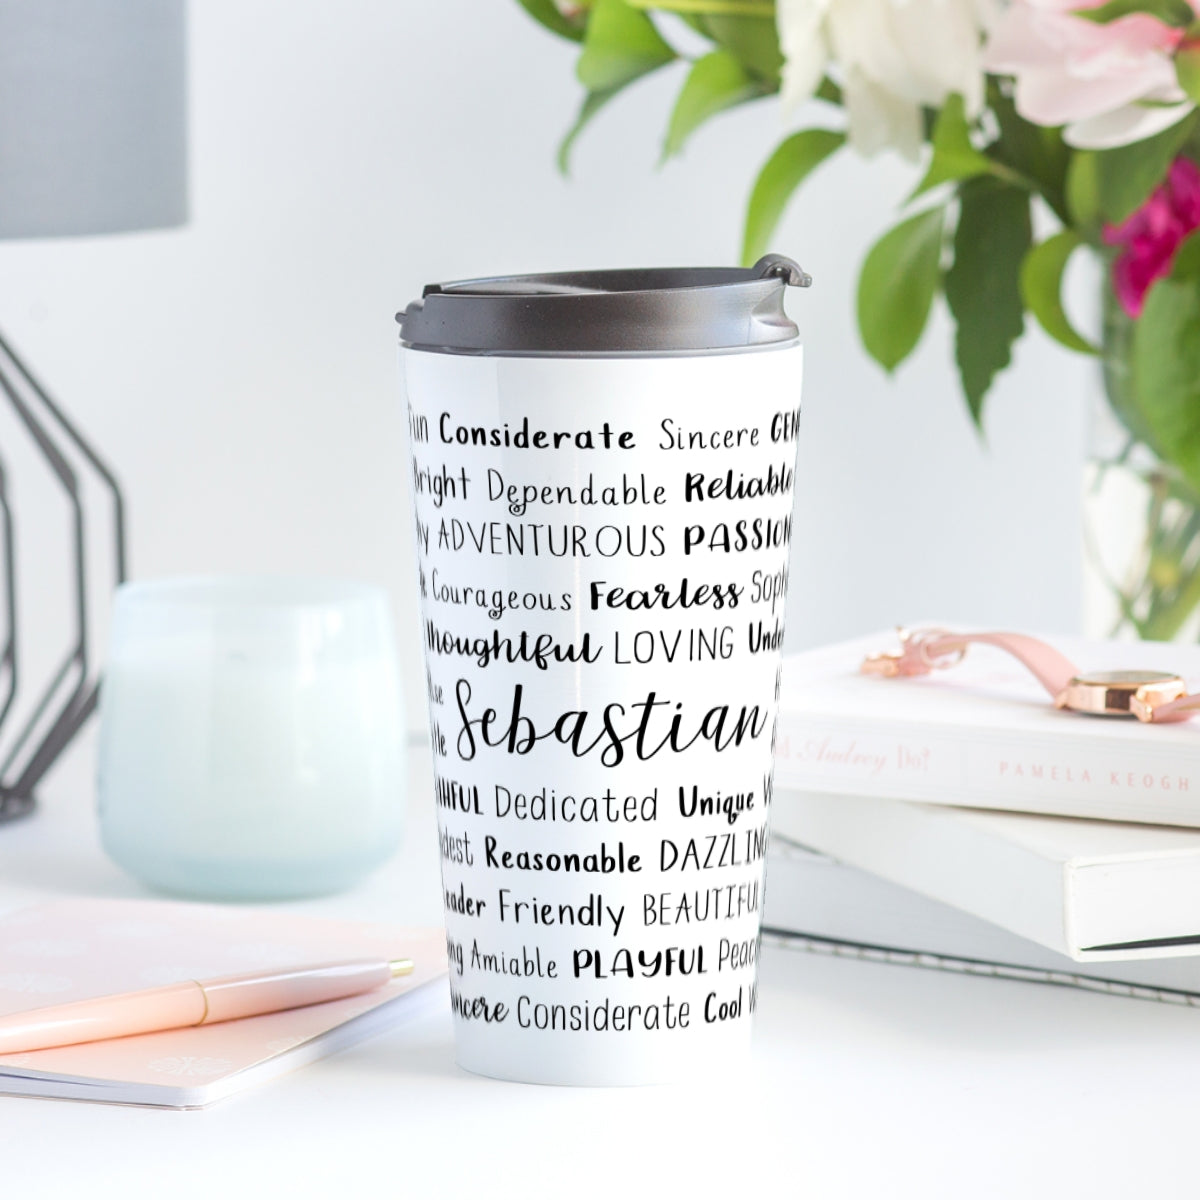 Sebastian Travel Mug